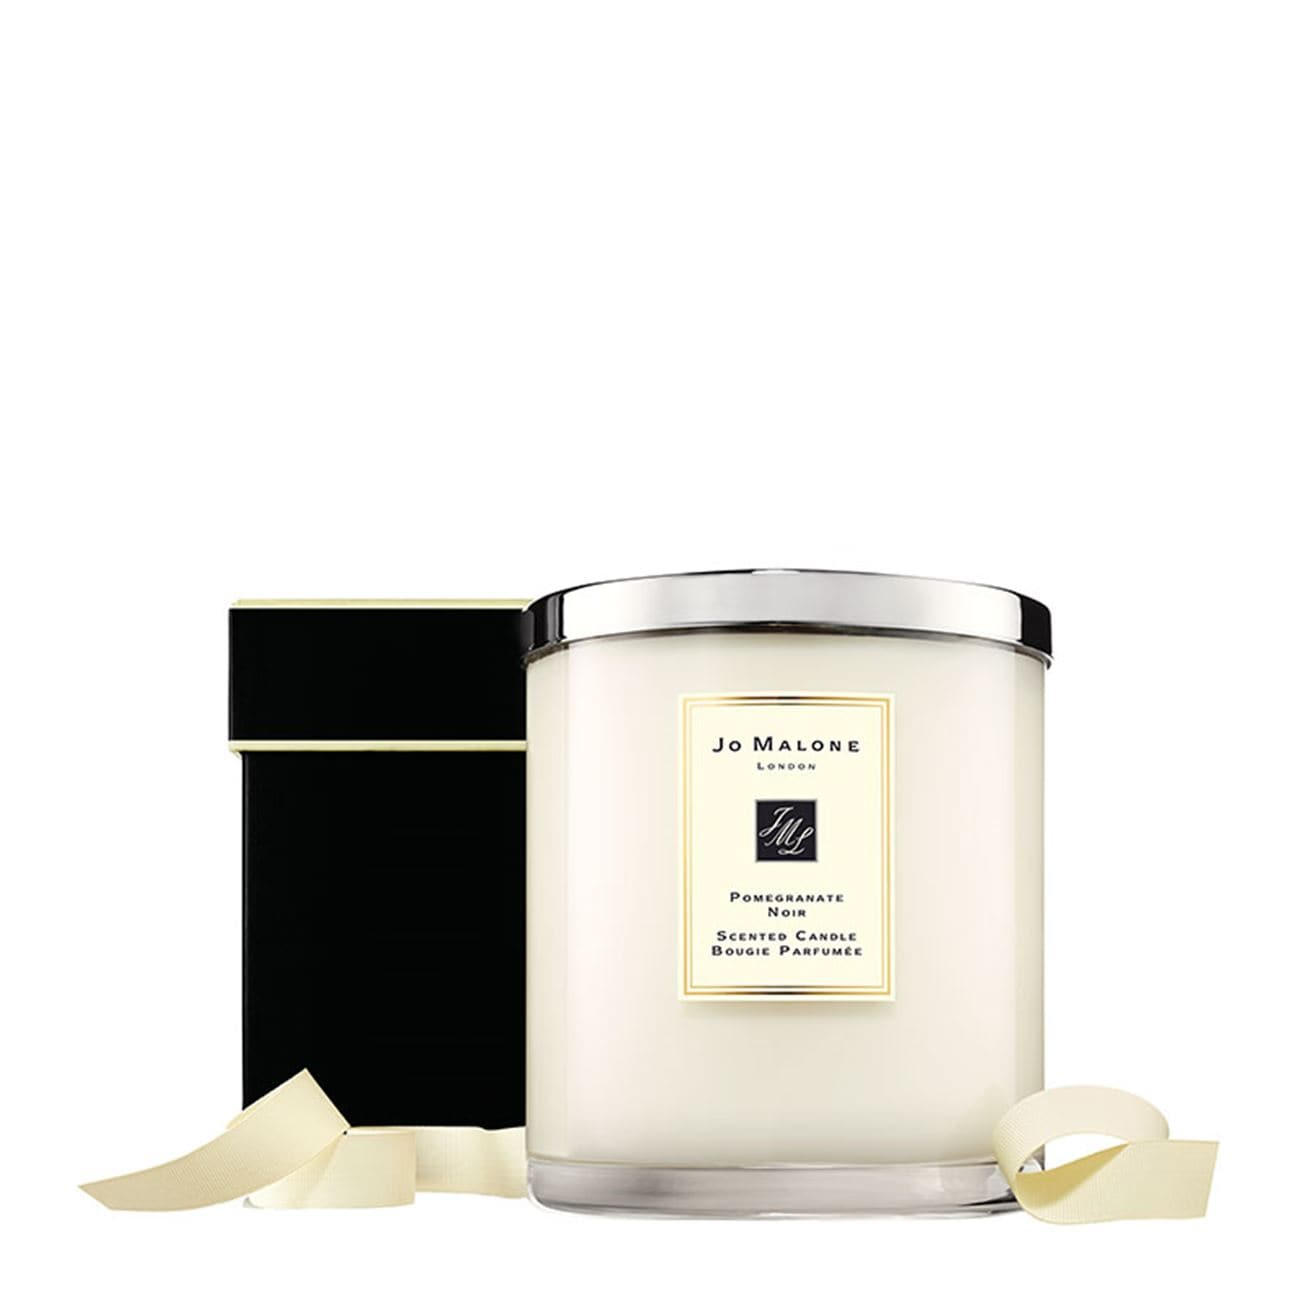 Jo Malone London Pomegranate Noir Luxury Candle Home Fragrances